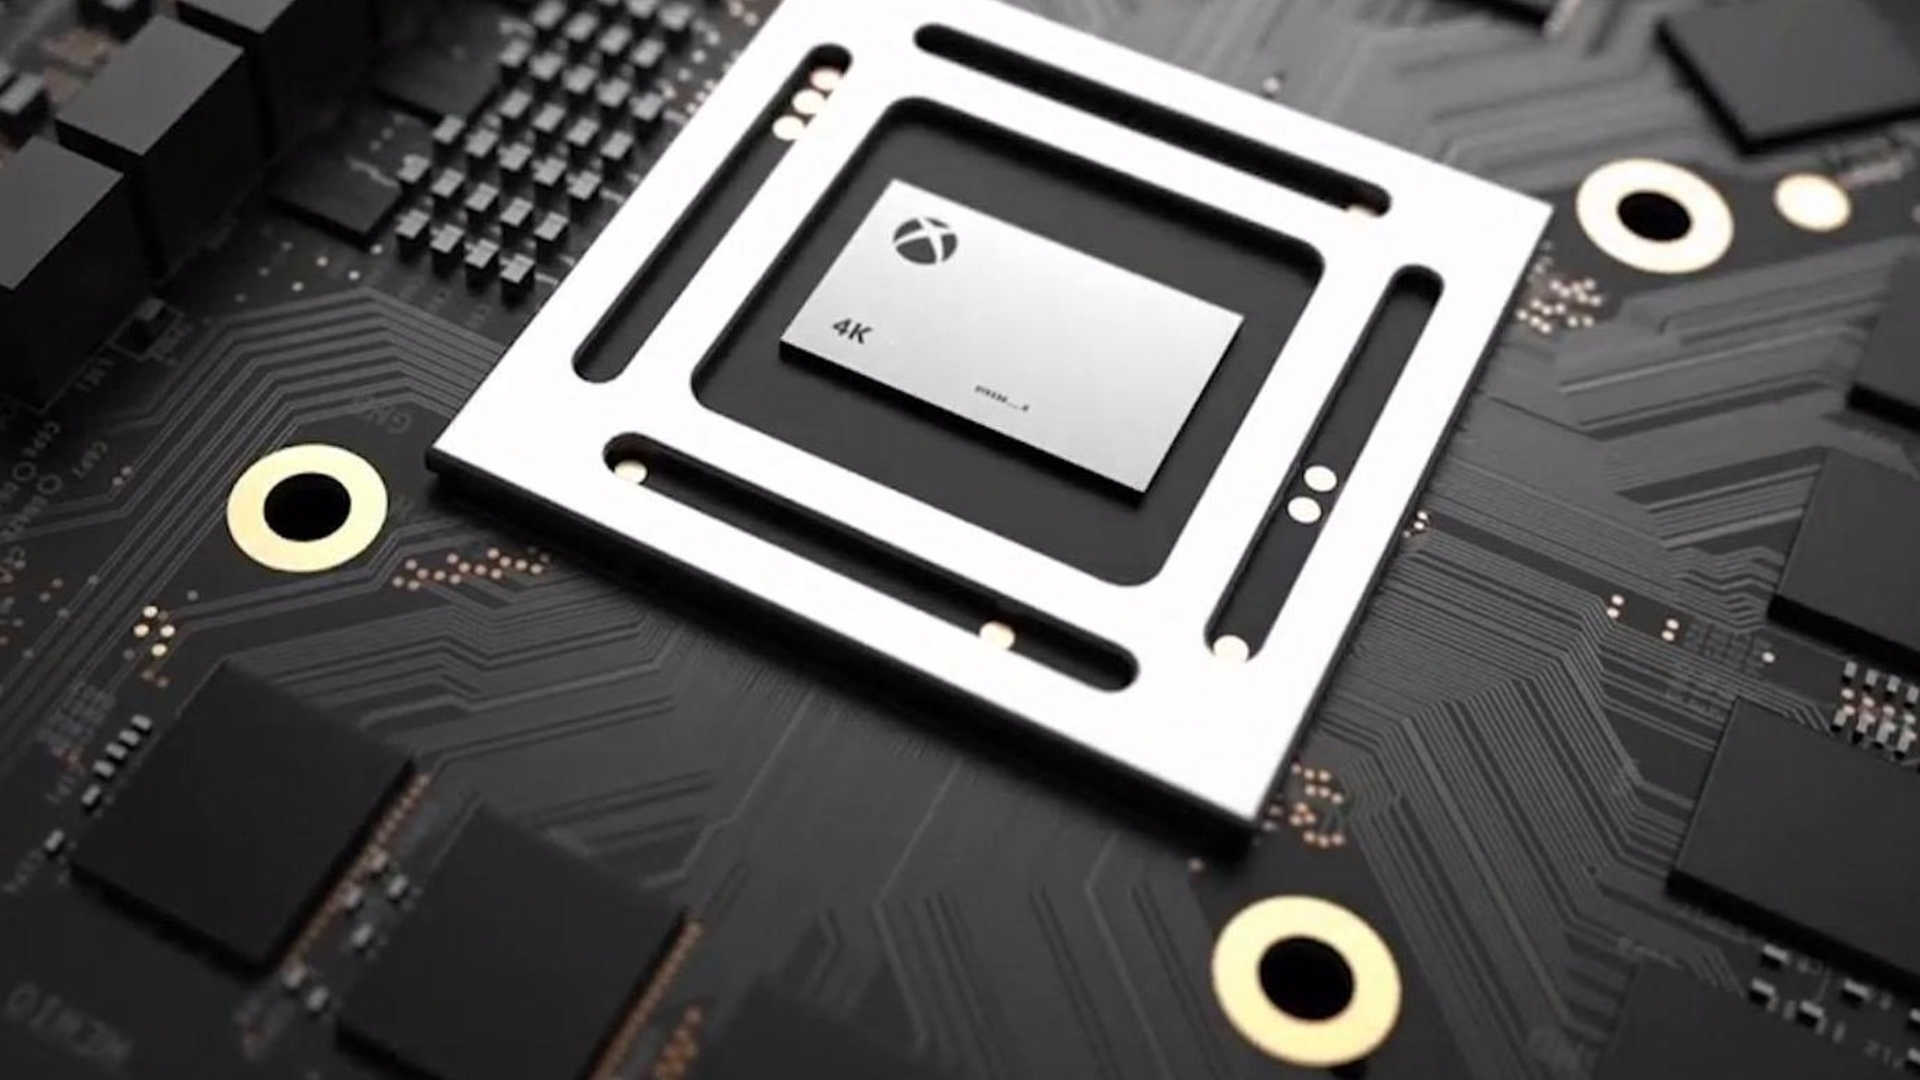 The race for 4K: how Project Scorpio targets ultra HD gaming